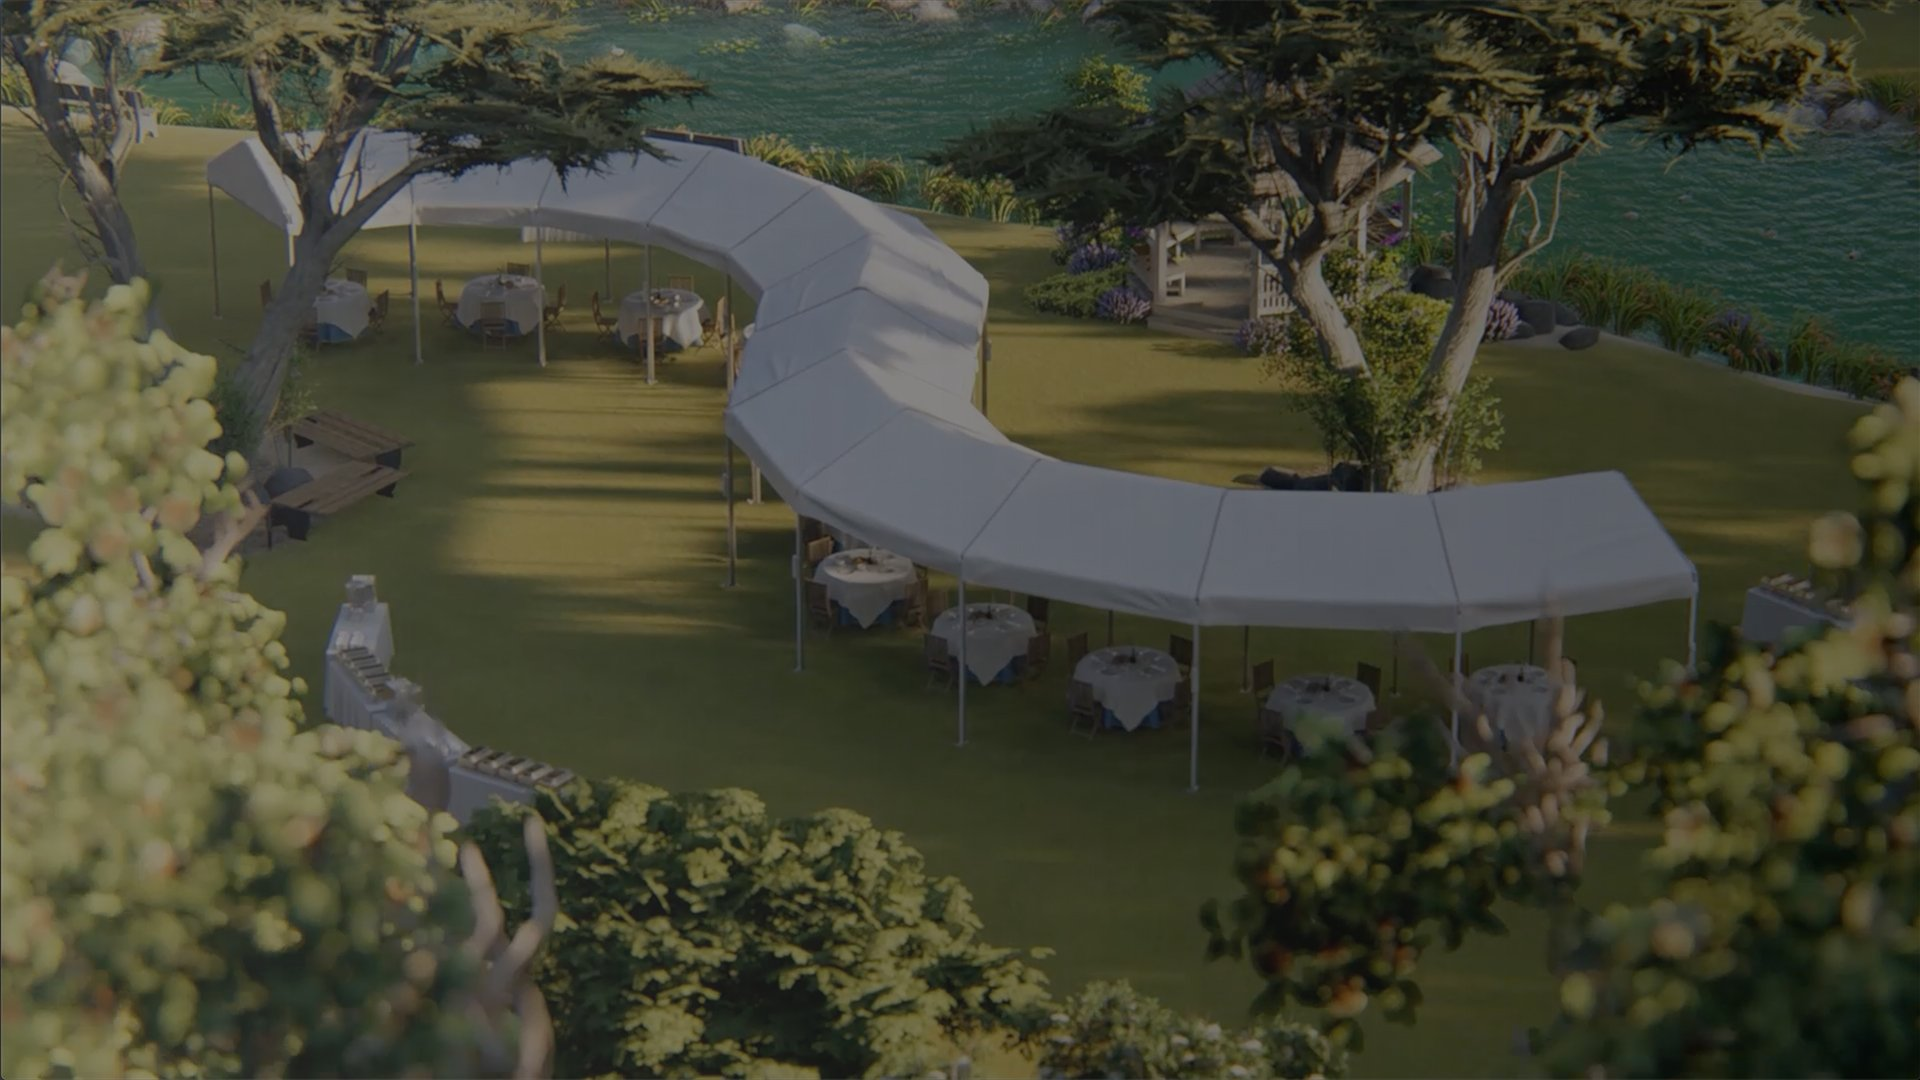 Imagine Omni Serpentine Event Tent